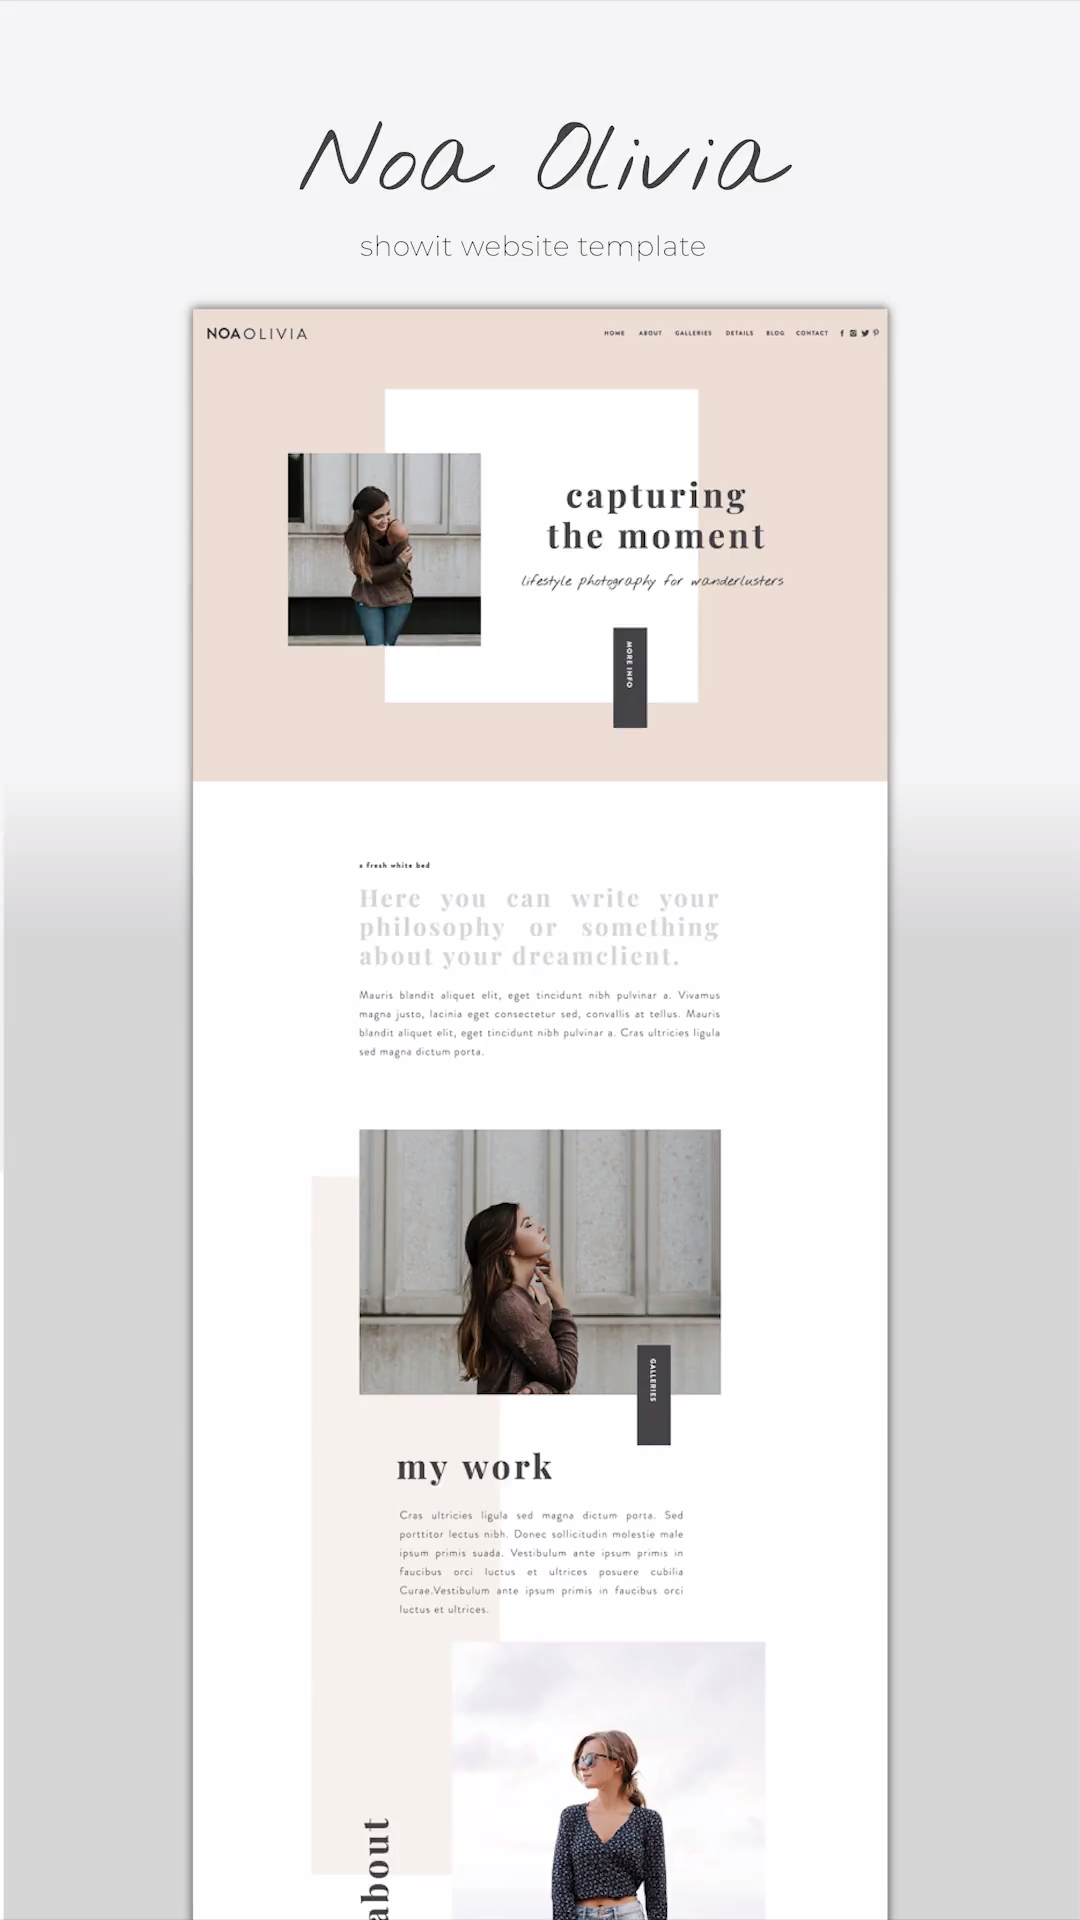 Industrial Design Travel Web Layout Simple Web Layout Fashion Web Layout Web Layout Business In 2020 Web Layout Design Website Design Layout Portfolio Design Layout